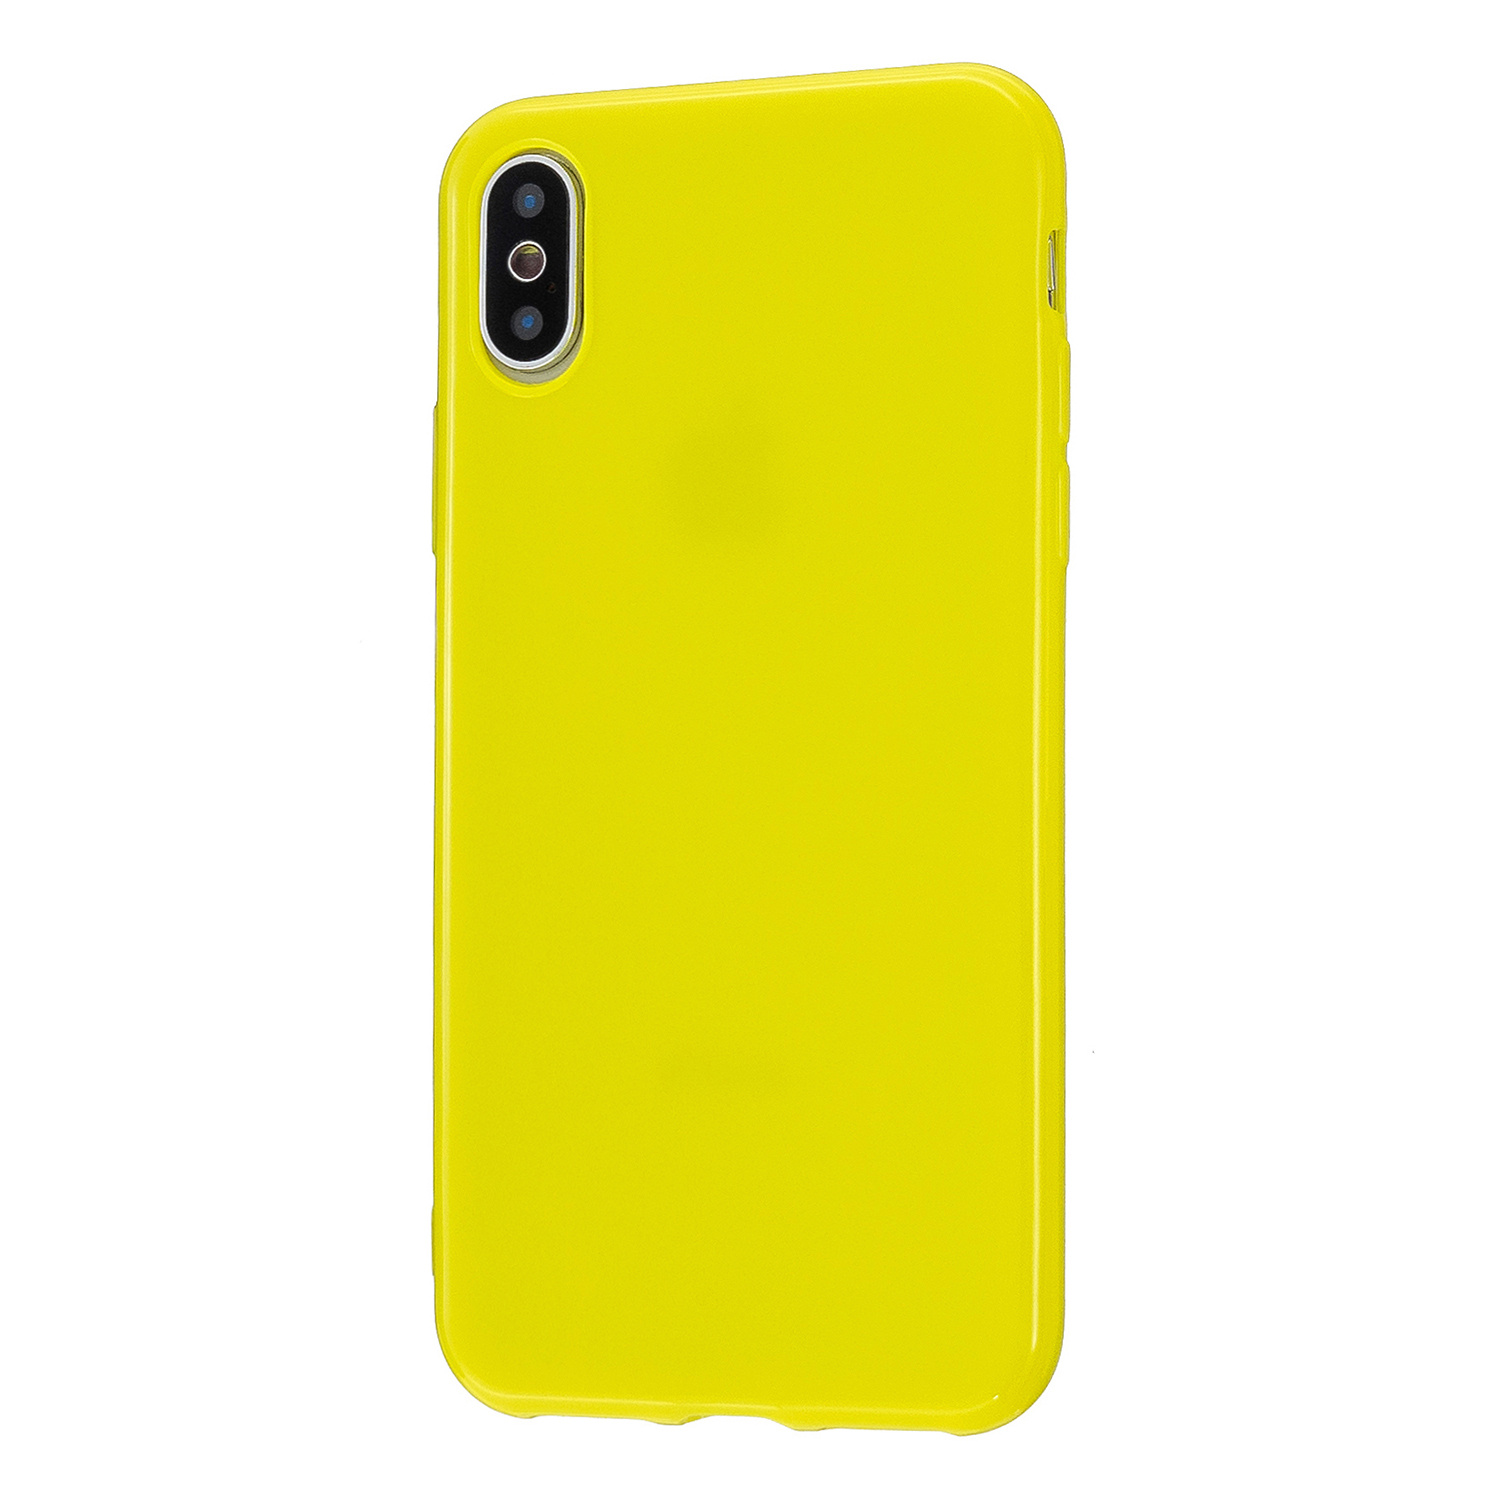 For iPhone X/XS/XS Max/XR  Cellphone Cover Slim Fit Bumper Protective Case Glossy TPU Mobile Phone Shell Lemon yellow